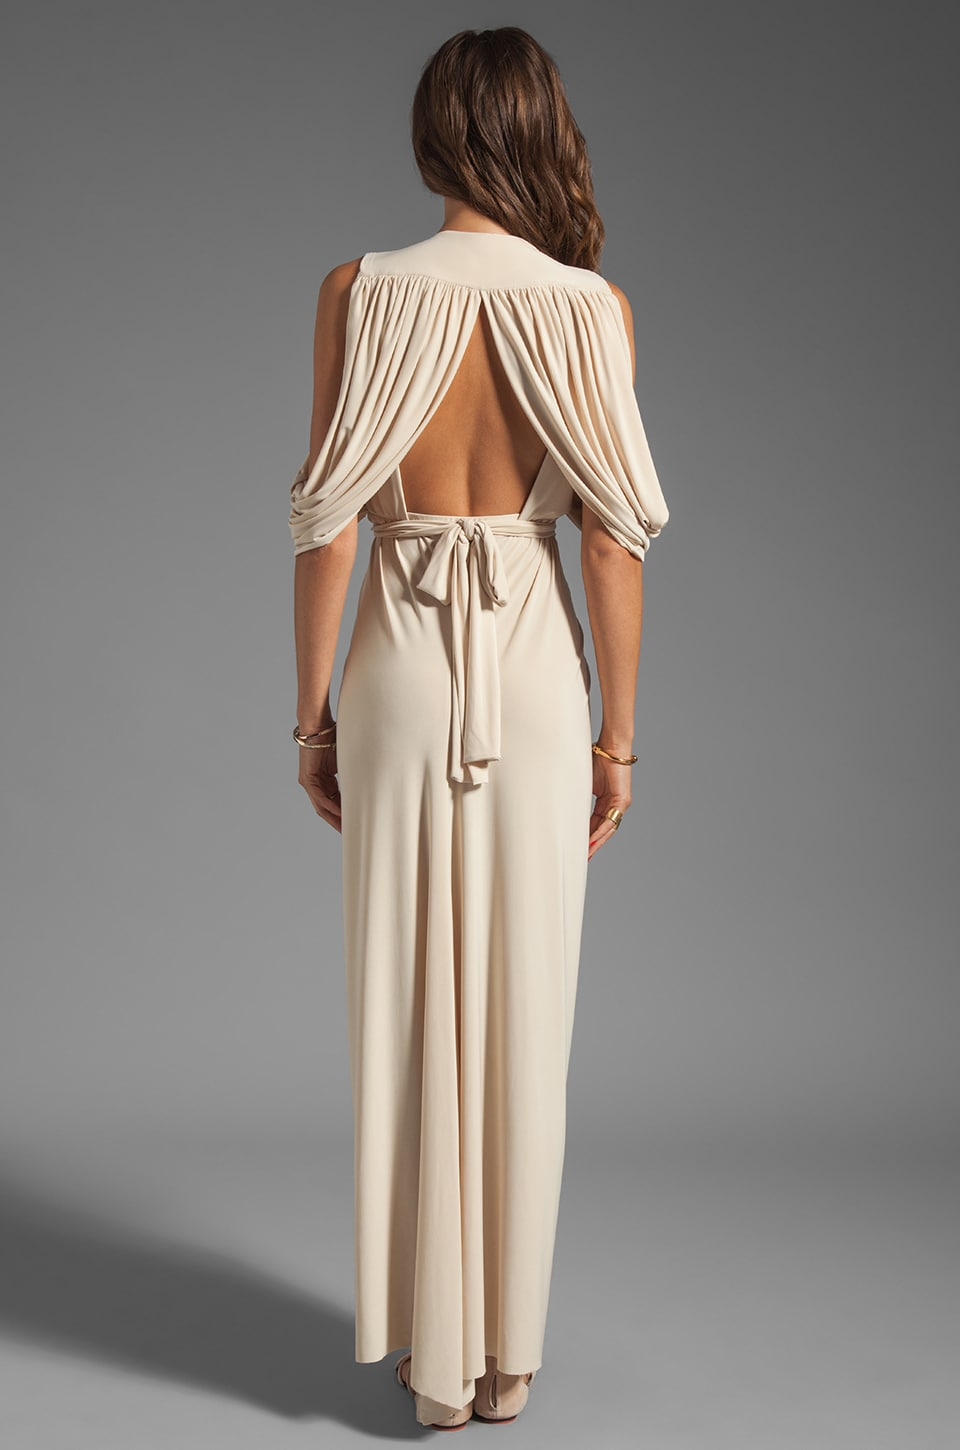 T-Bags LosAngeles Drape Back Maxi in Cream